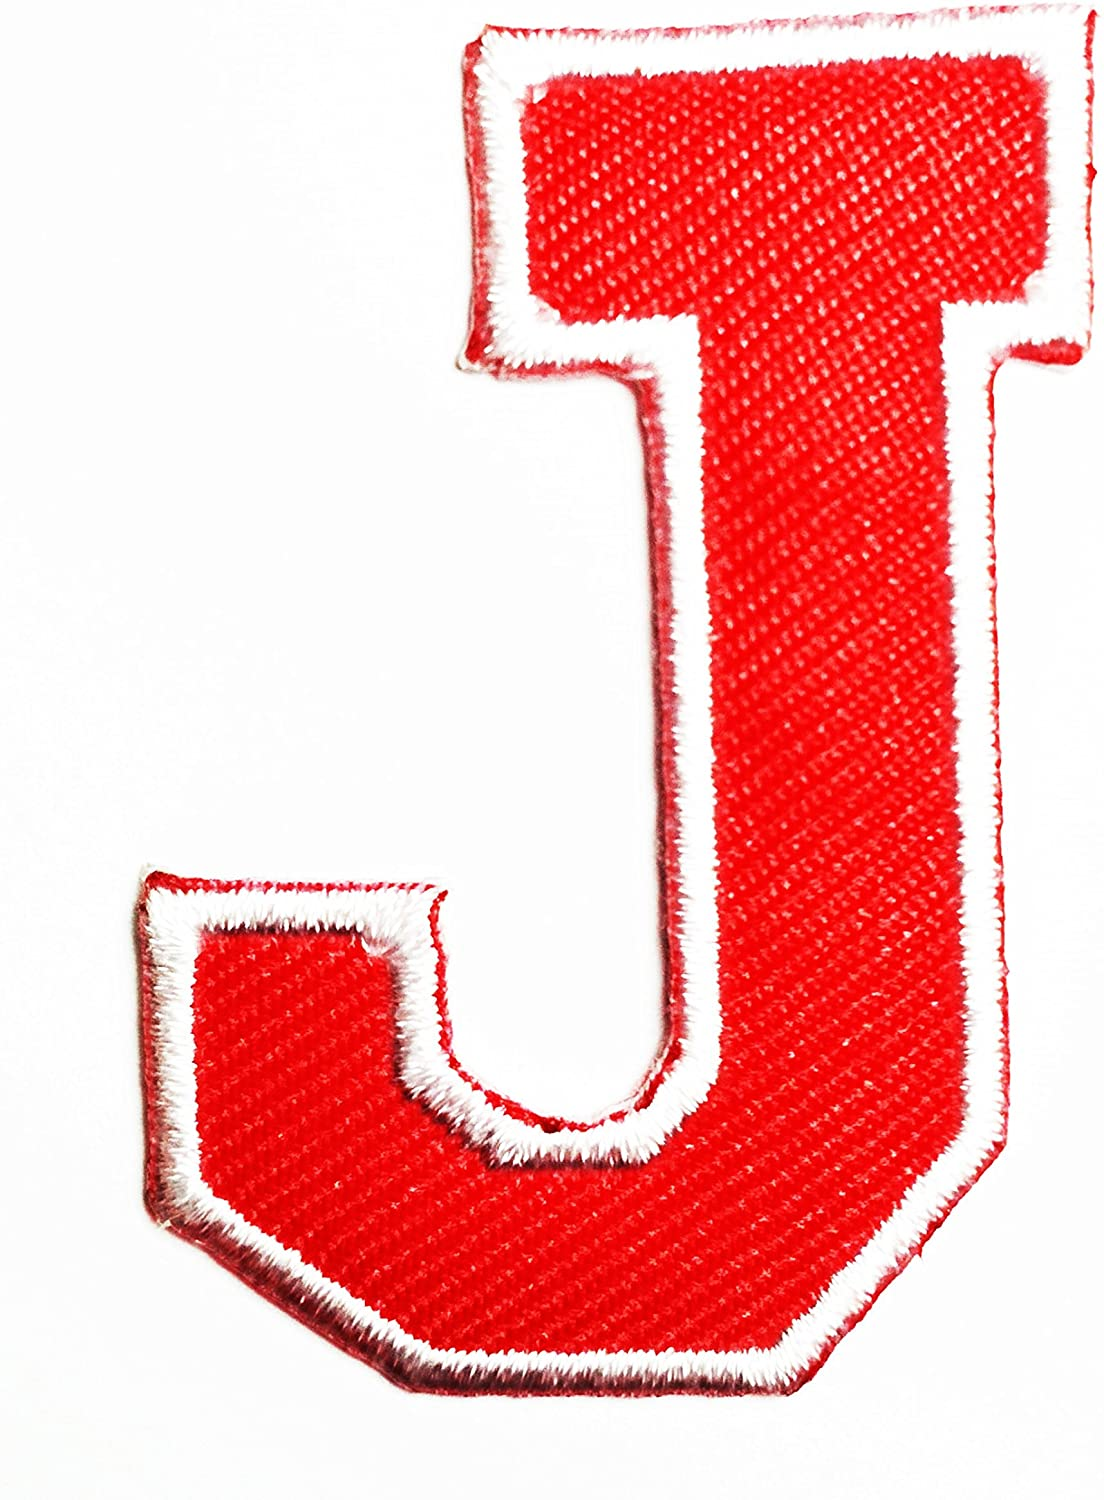 HHO Red letter J Patch English Alphabet Character Embroidered DIY Patches, Cute Applique Sew Iron on Kids Craft Patch for Bags Jackets Jeans Clothes